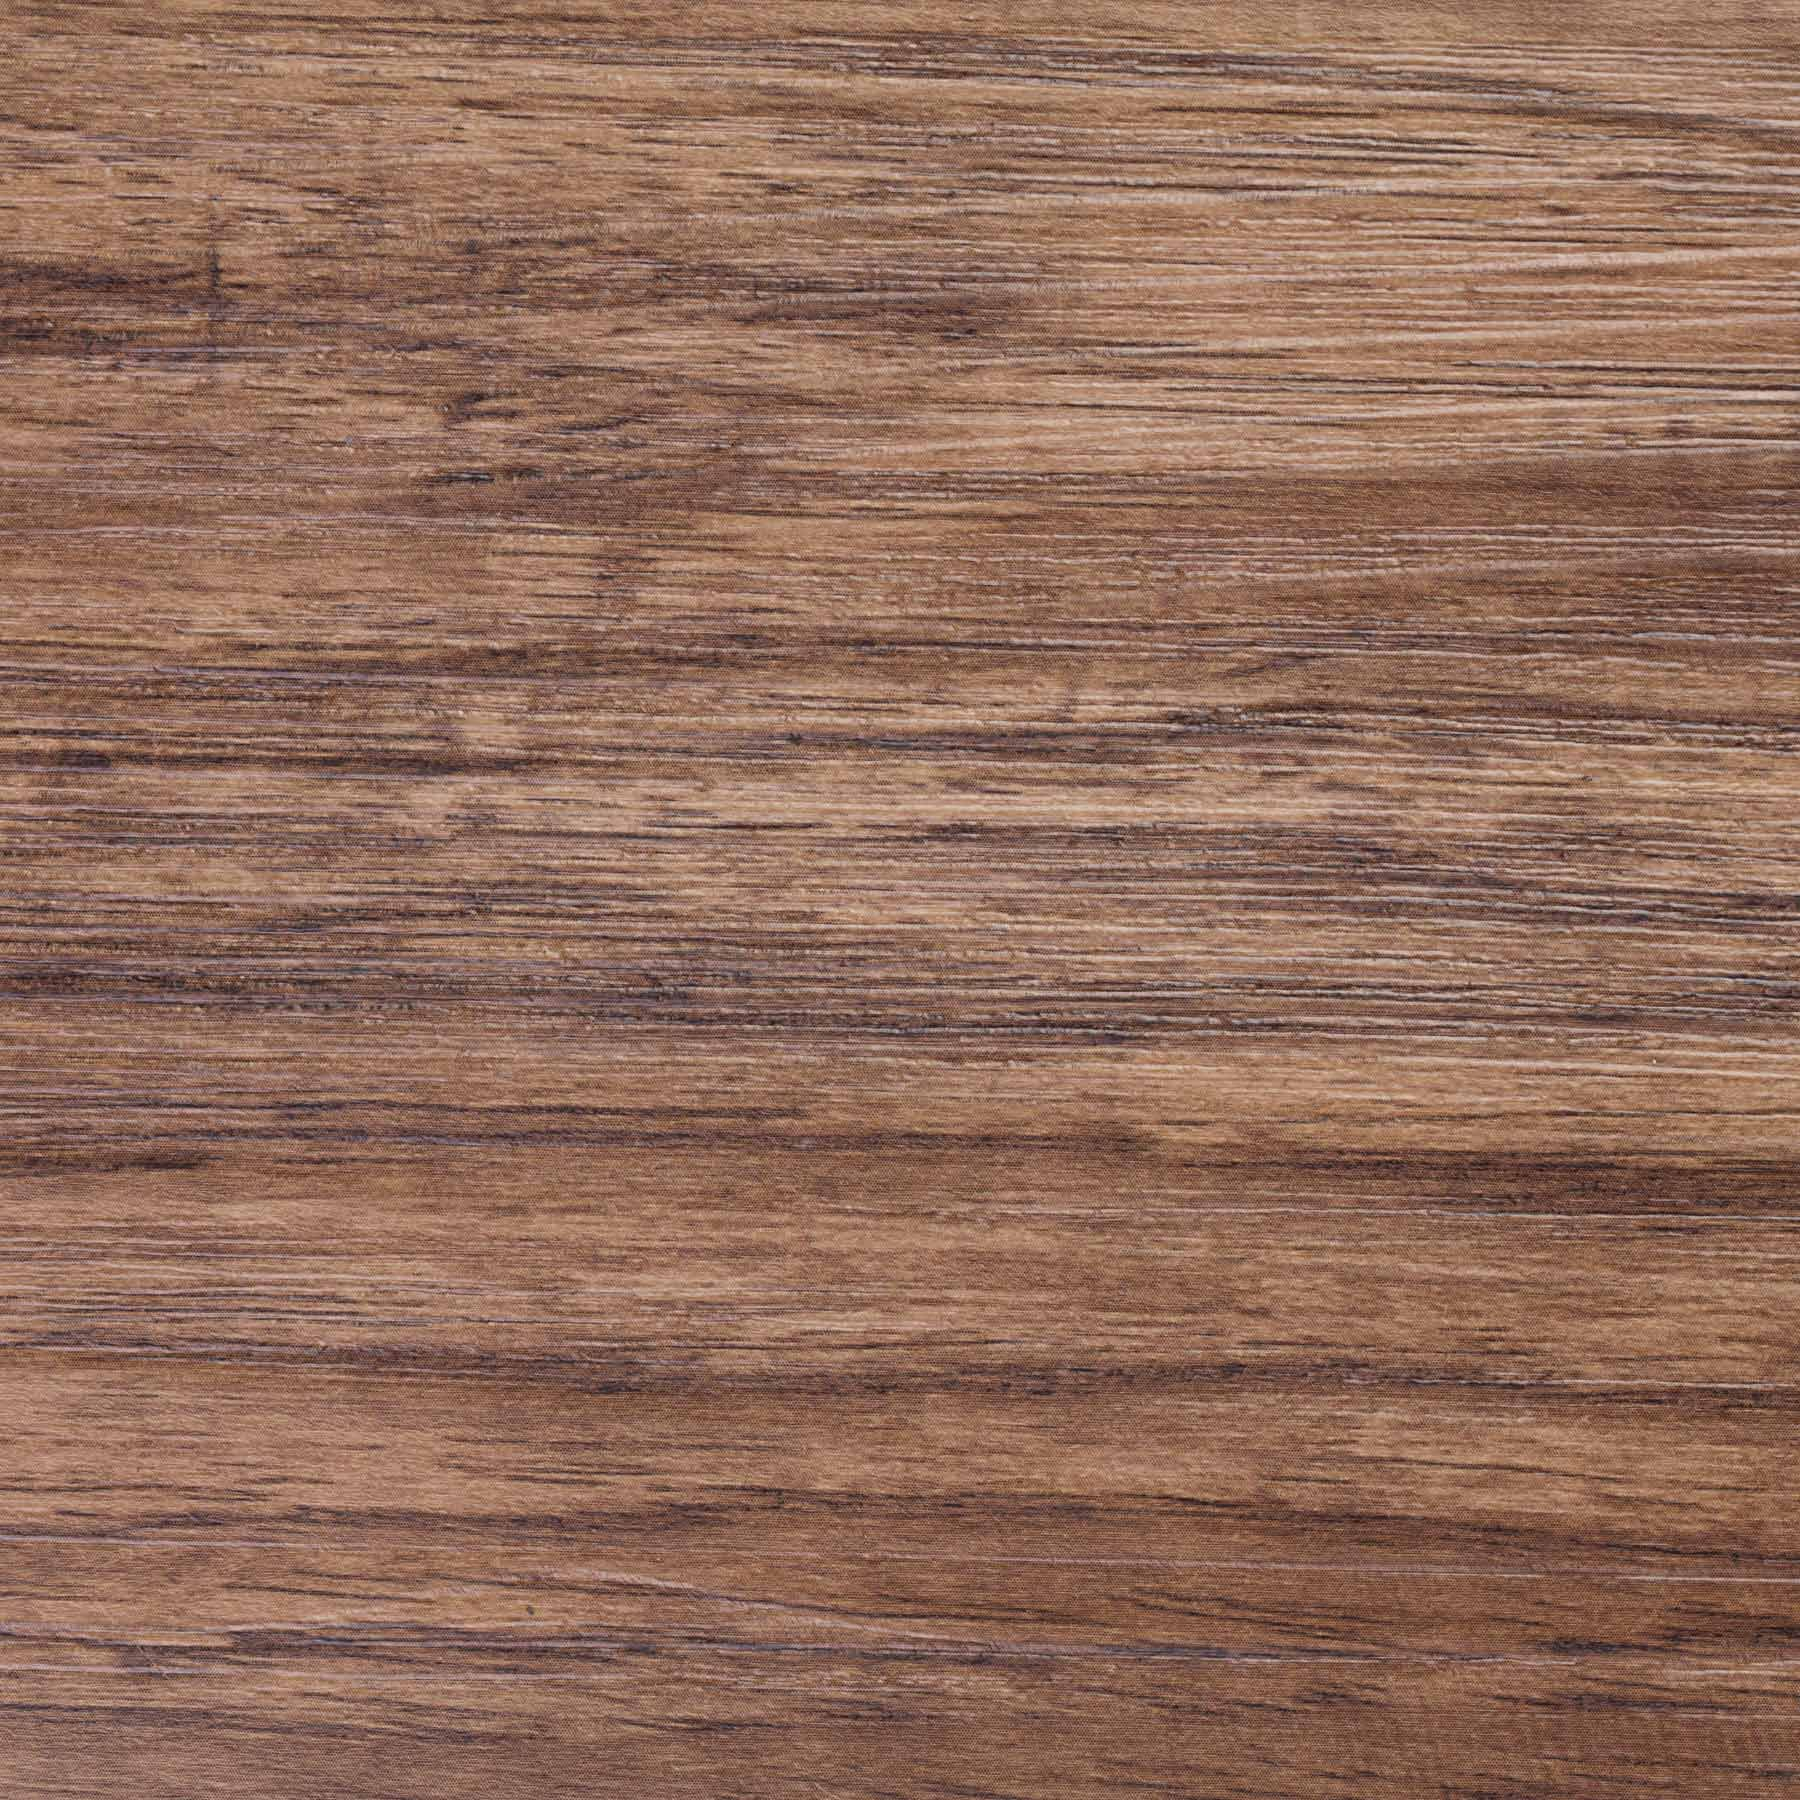 MAYKKE Heirloom Pine 47 Sq Ft Vinyl Plank Flooring 48x6 inch | Resembles Hardwood, Or Use for Wood Accent Wall | Pack of 24, Easy Install JHA1000102 by Maykke (Image #4)